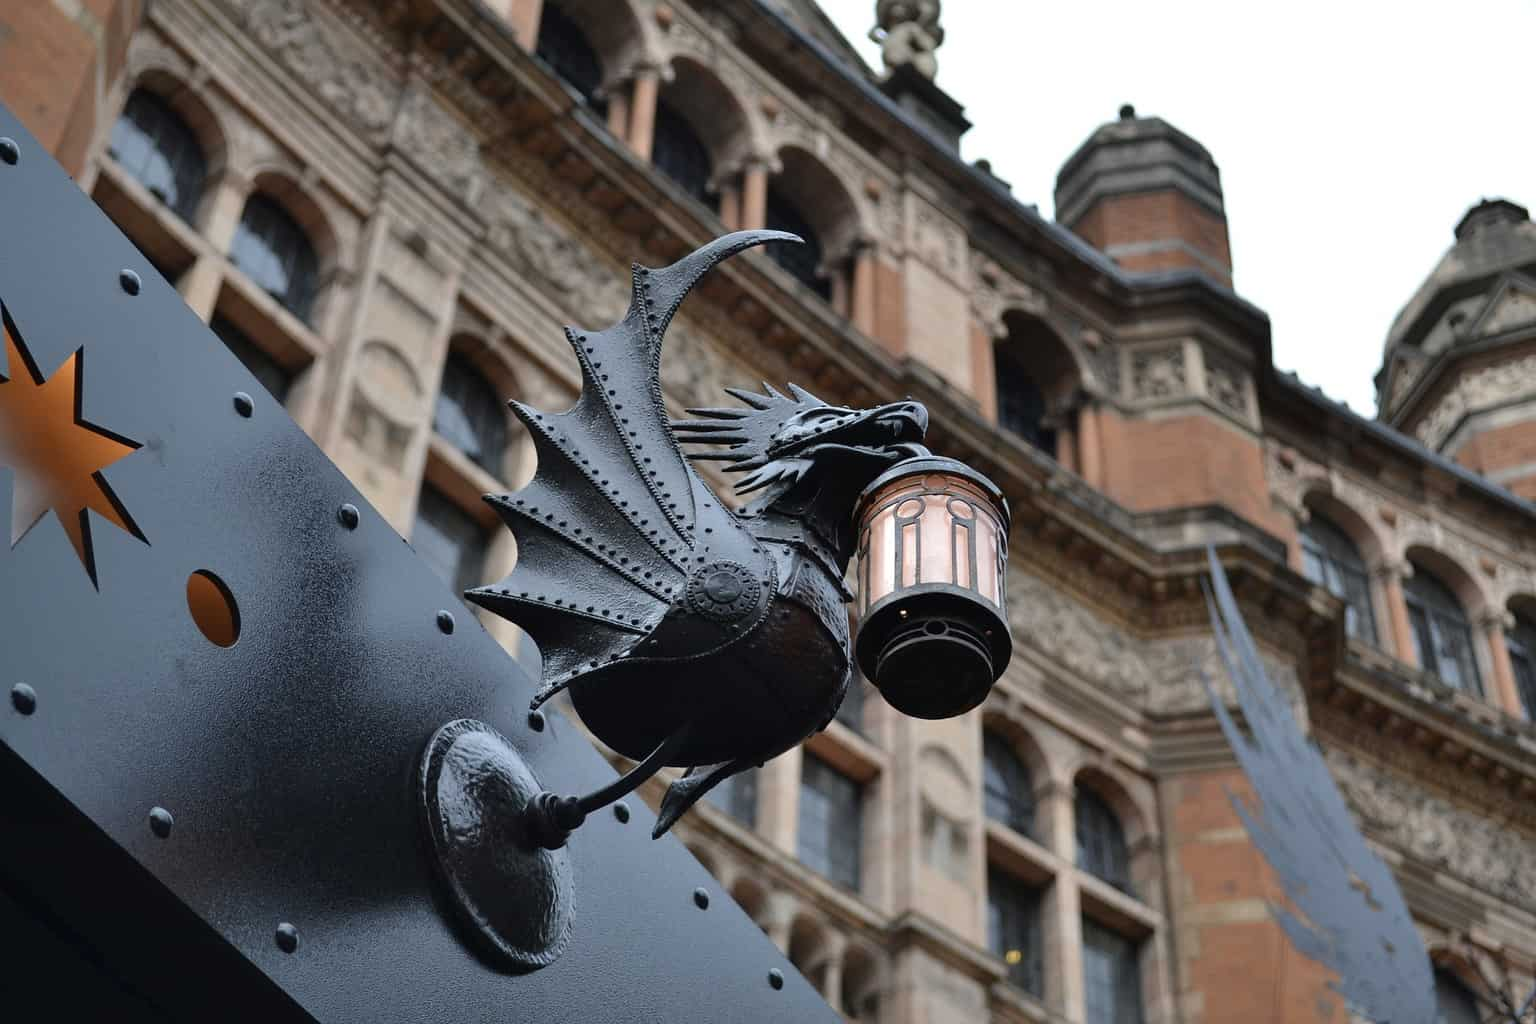 Harry Potter and The Cursed Child gargoyle light outside the theatre